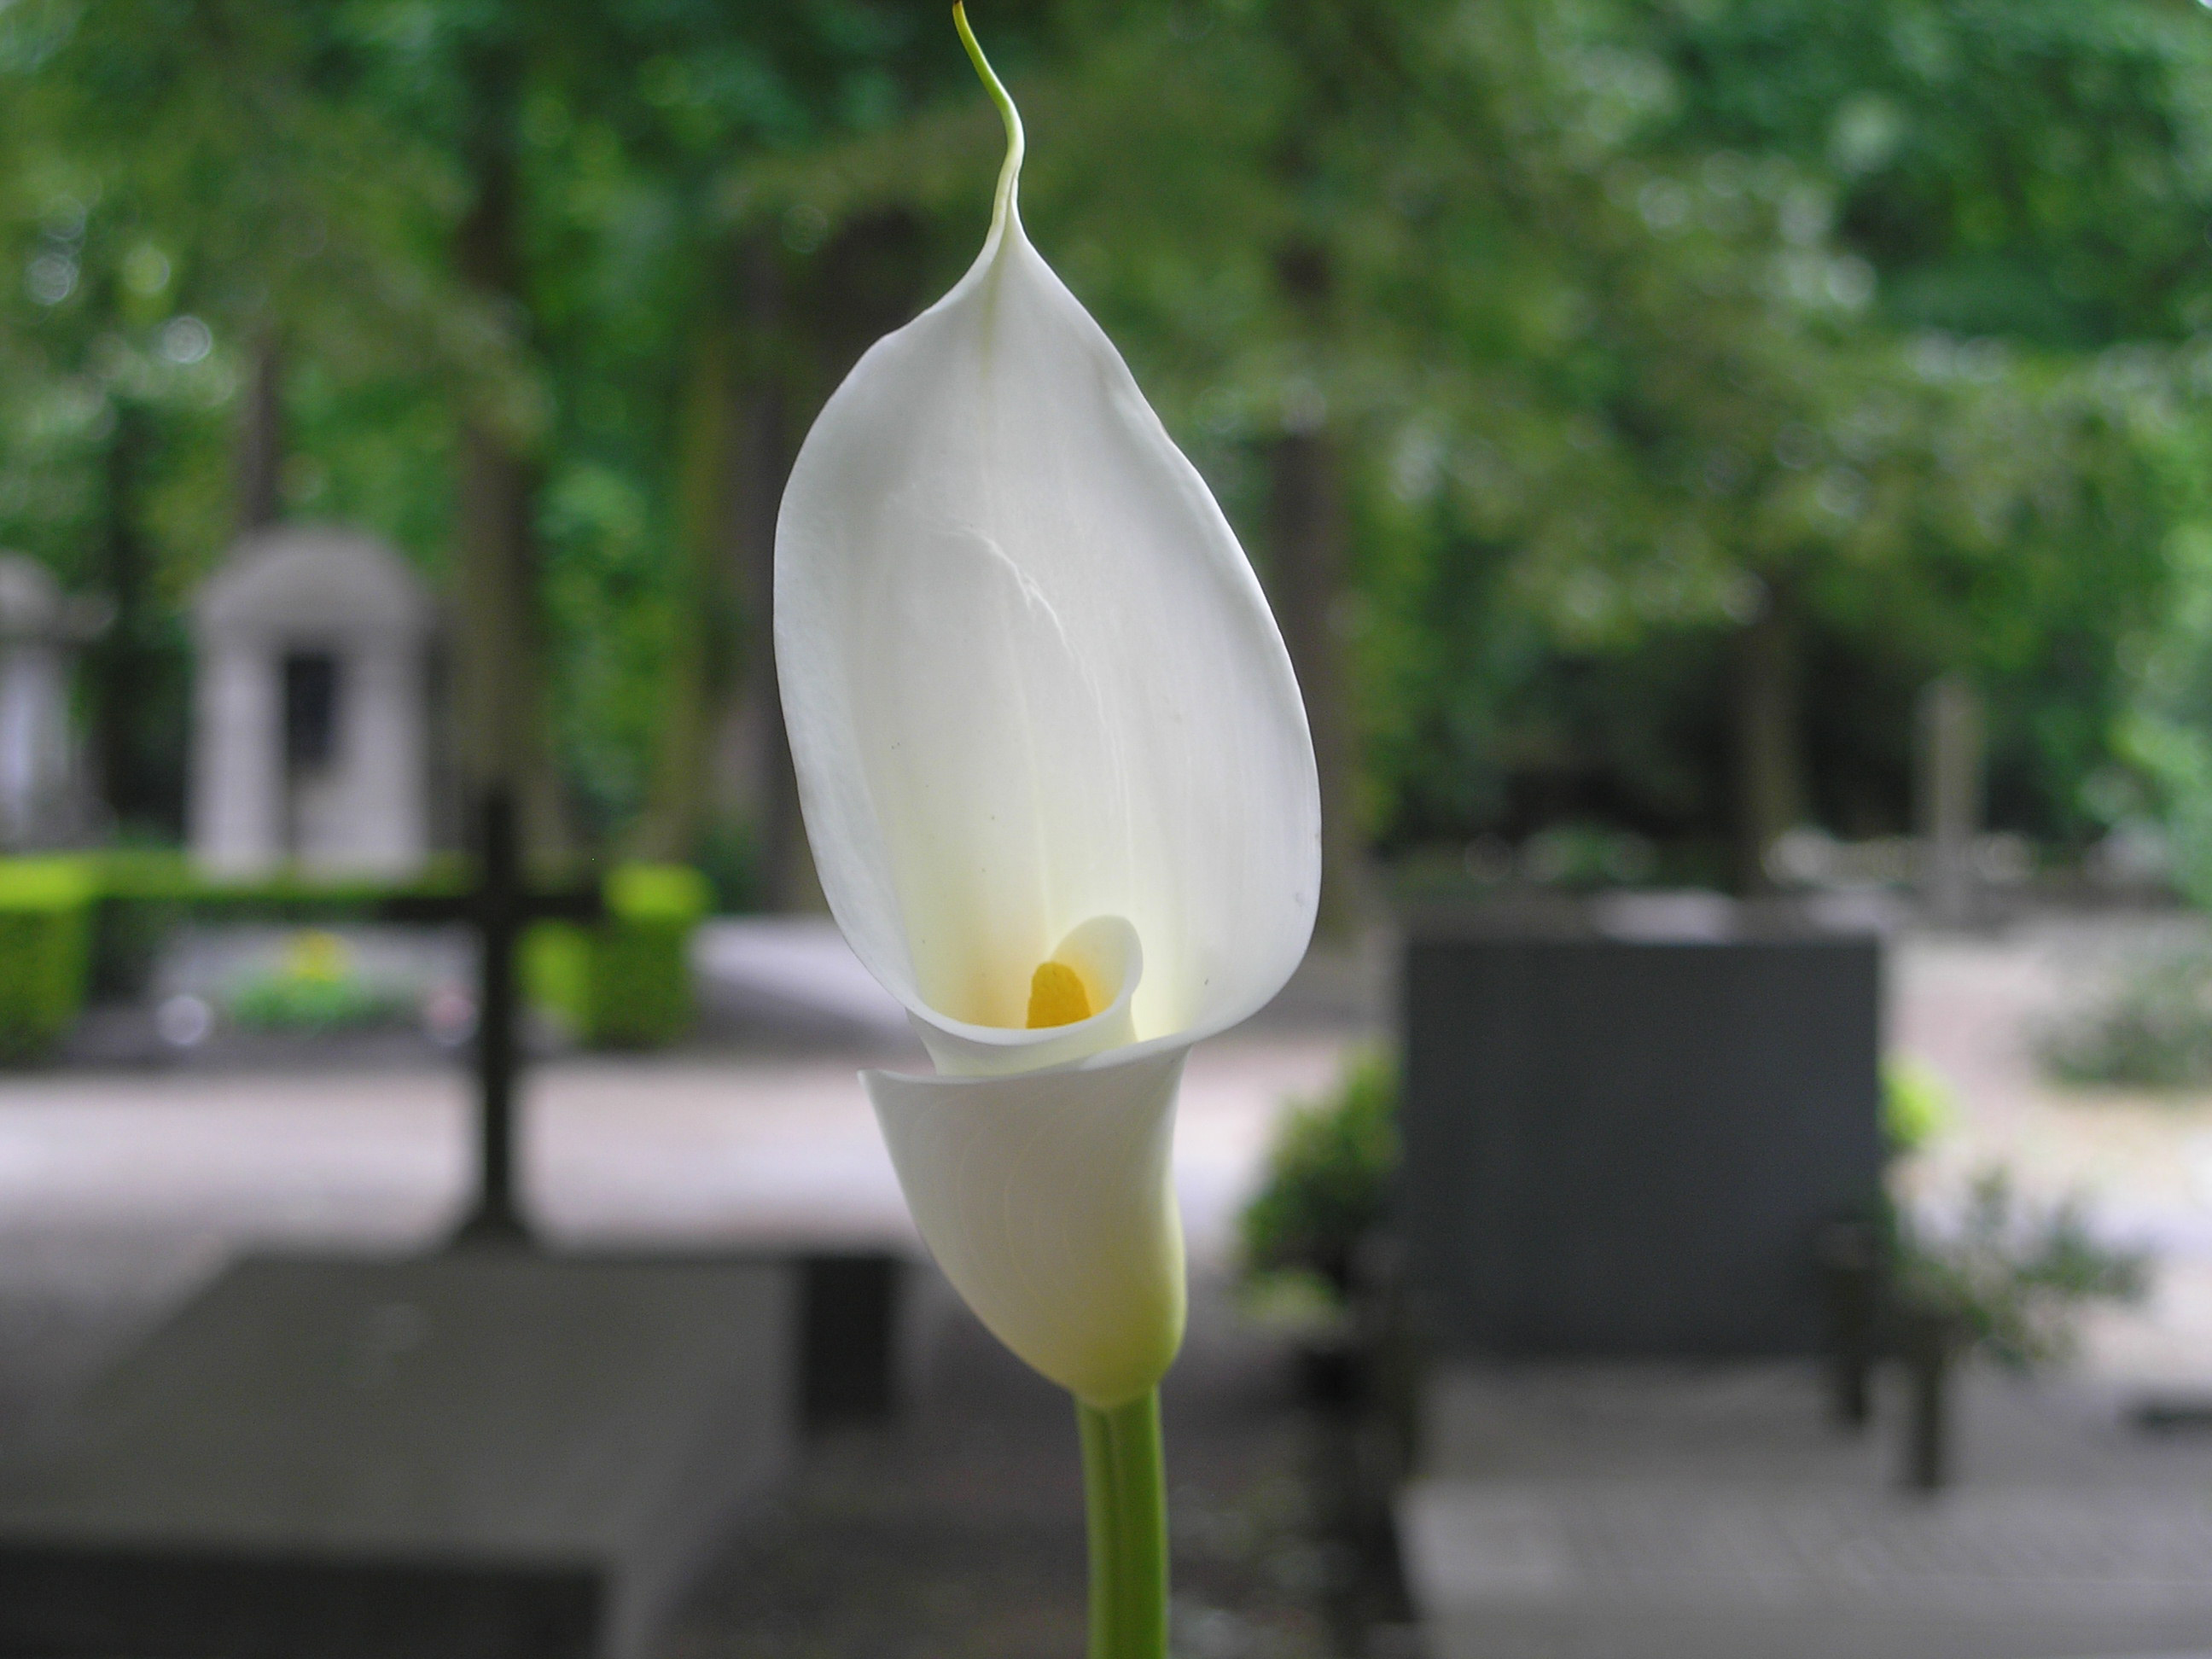 Flowers symbolically suited for funerals